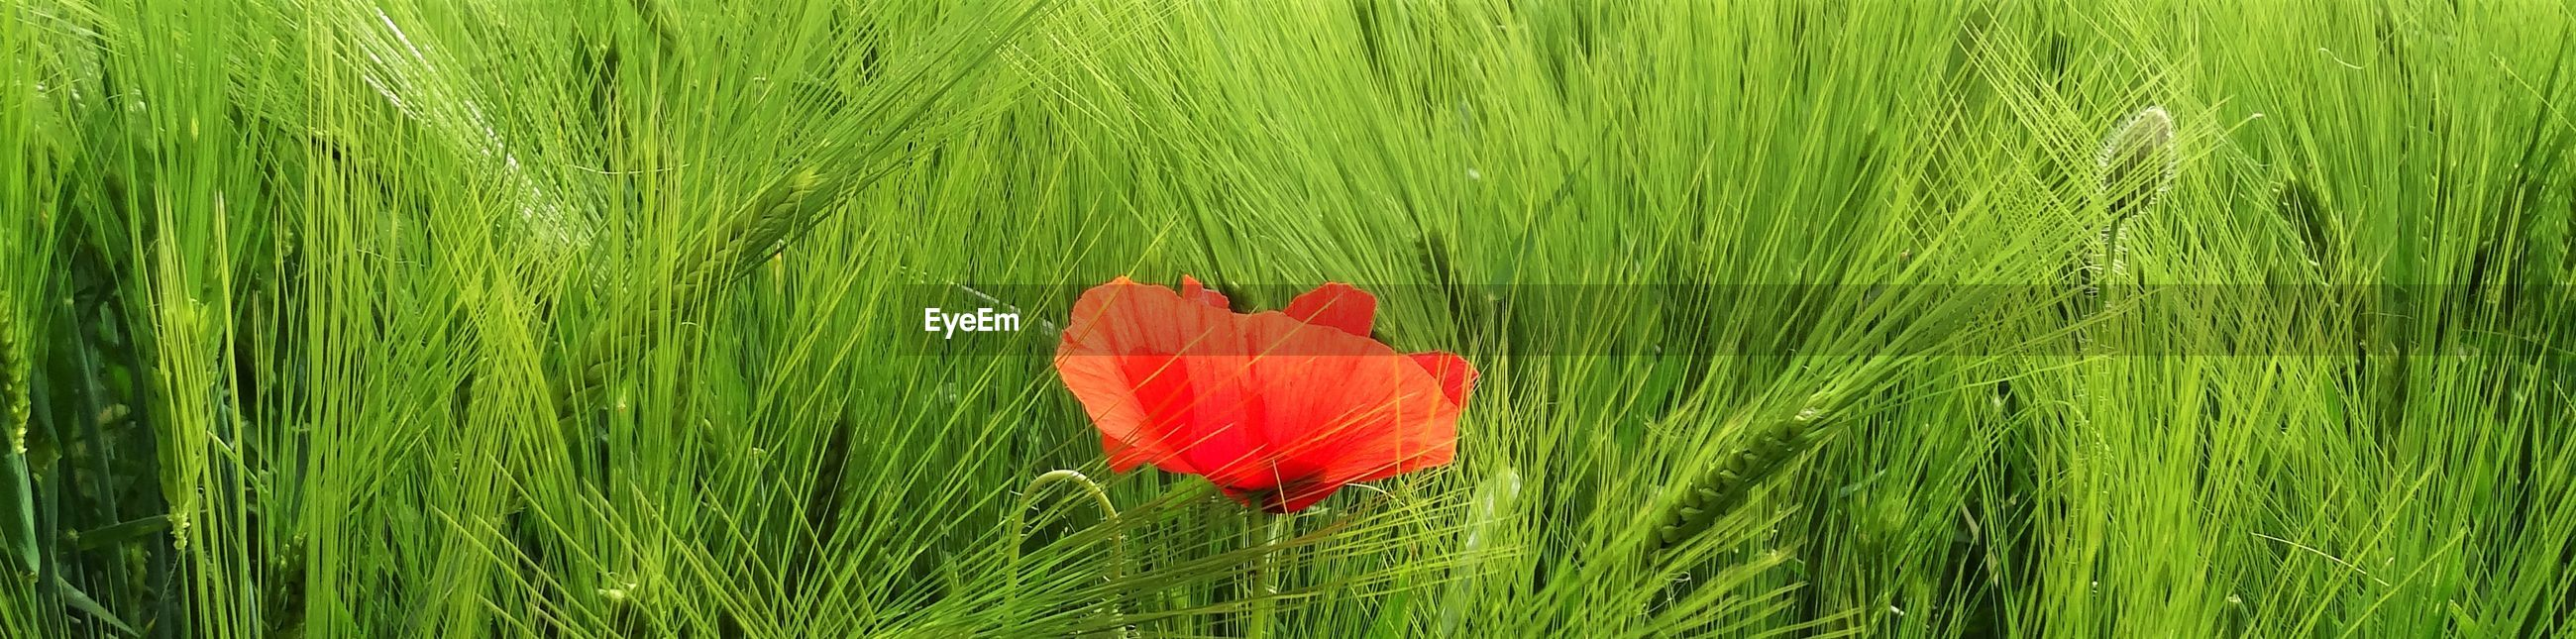 CLOSE-UP OF RED POPPY ON GRASS